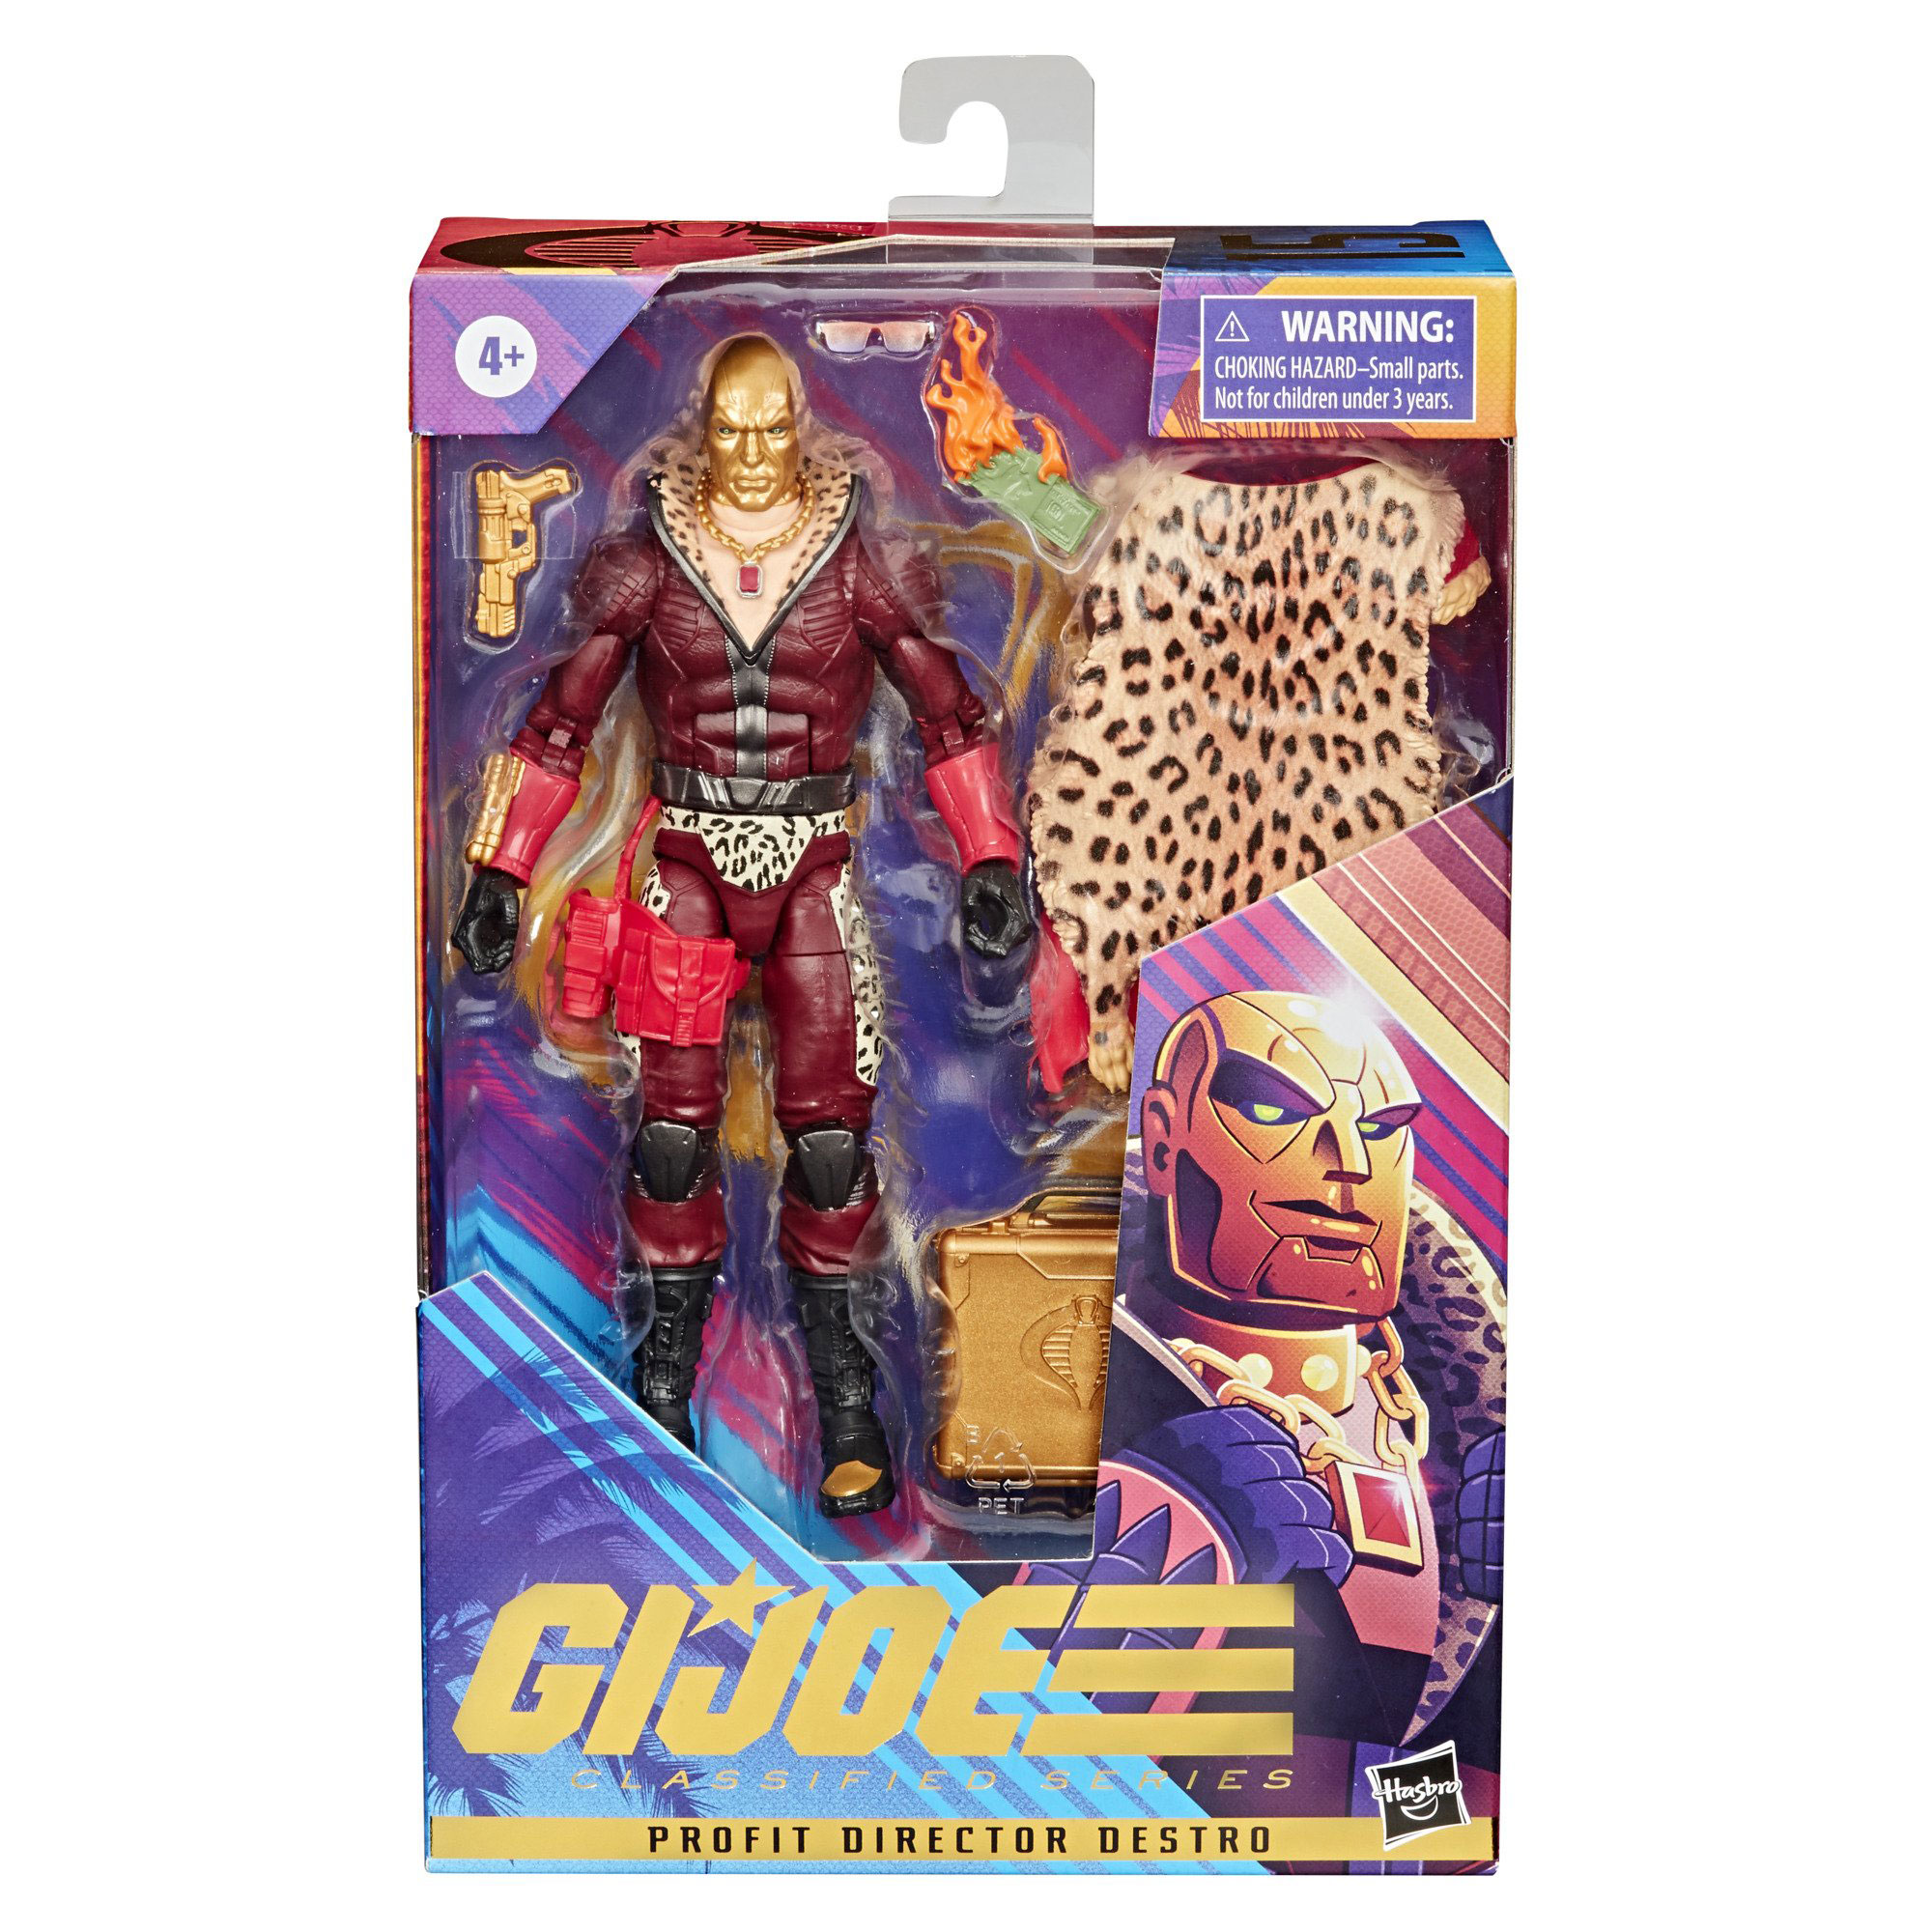 gi-joe-classified-profit-director-pimp-daddy-destro-action-figure-in-packaging